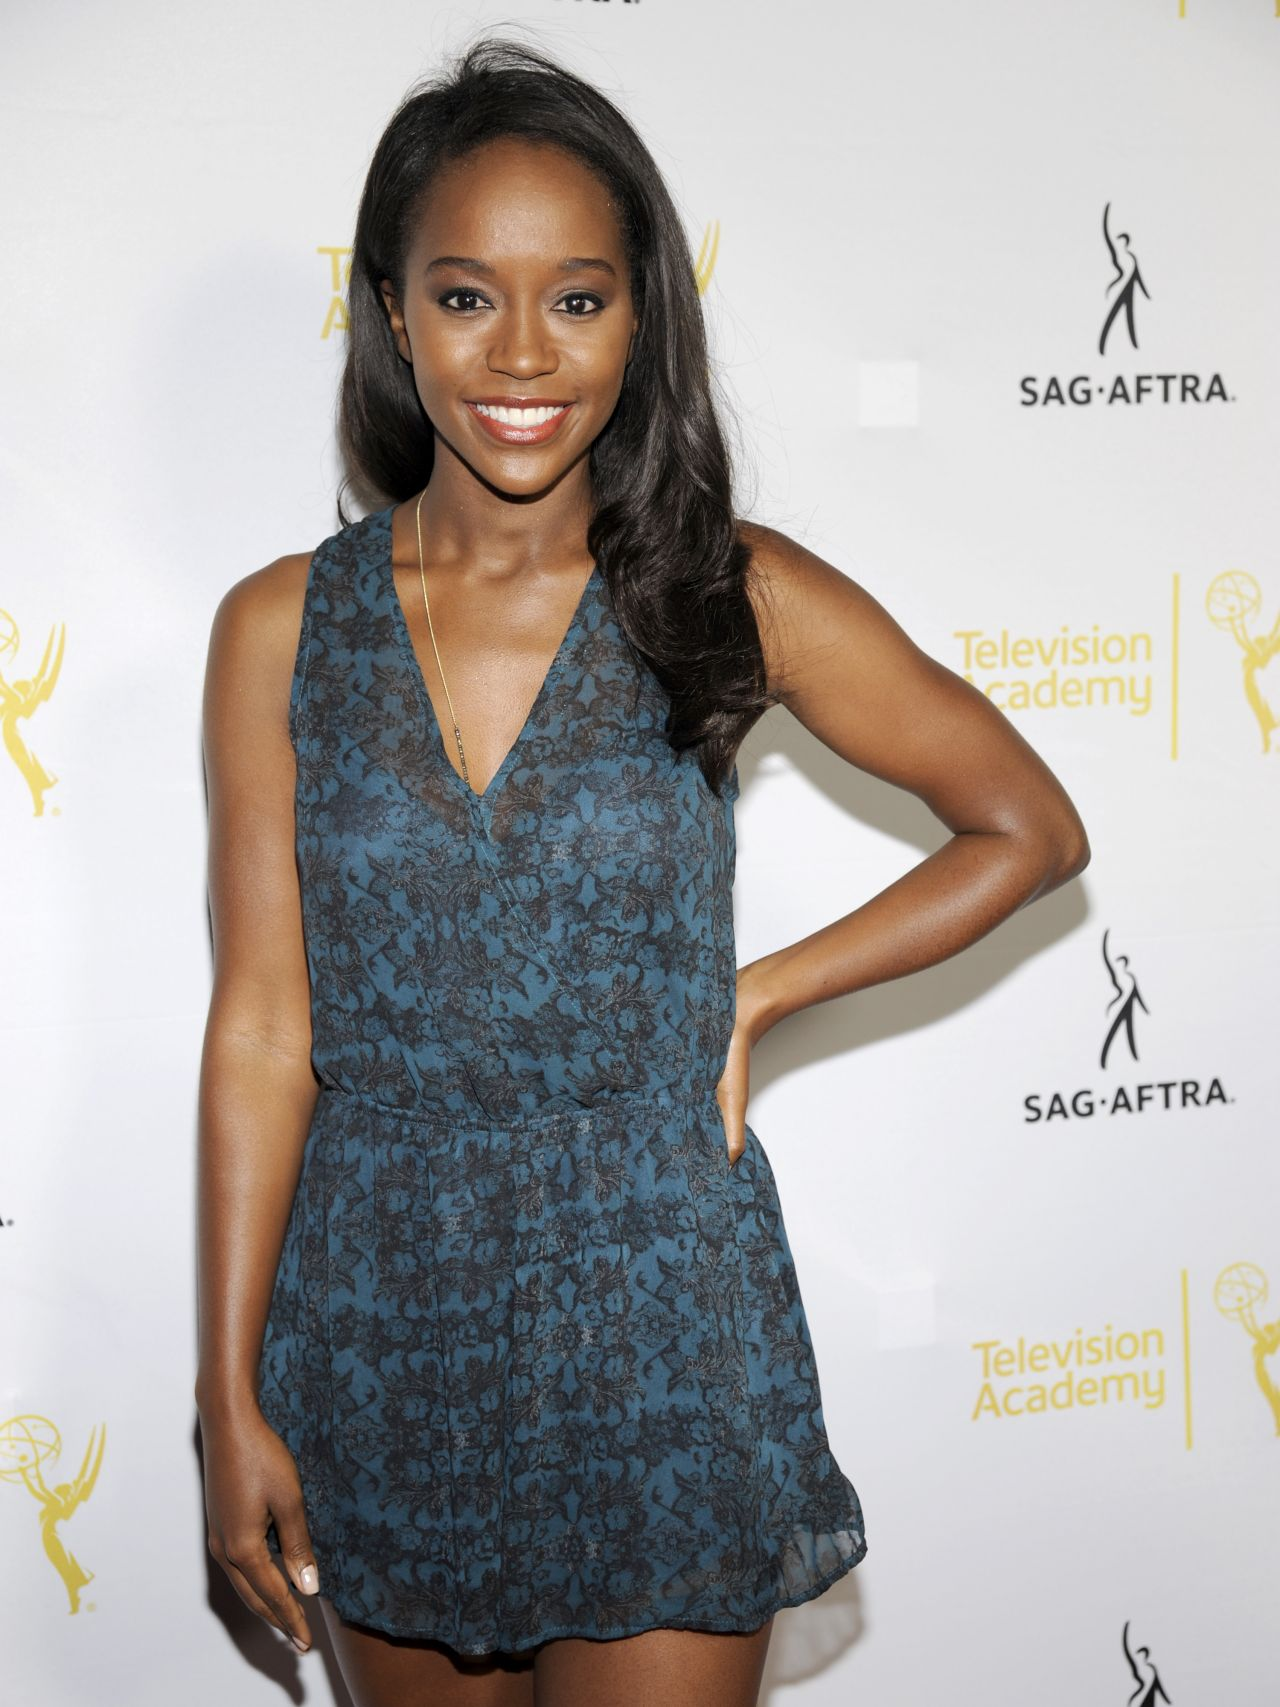 Aja Naomi King at 2014 Emmy Awards Dynamic and Diverse Nominee Reception